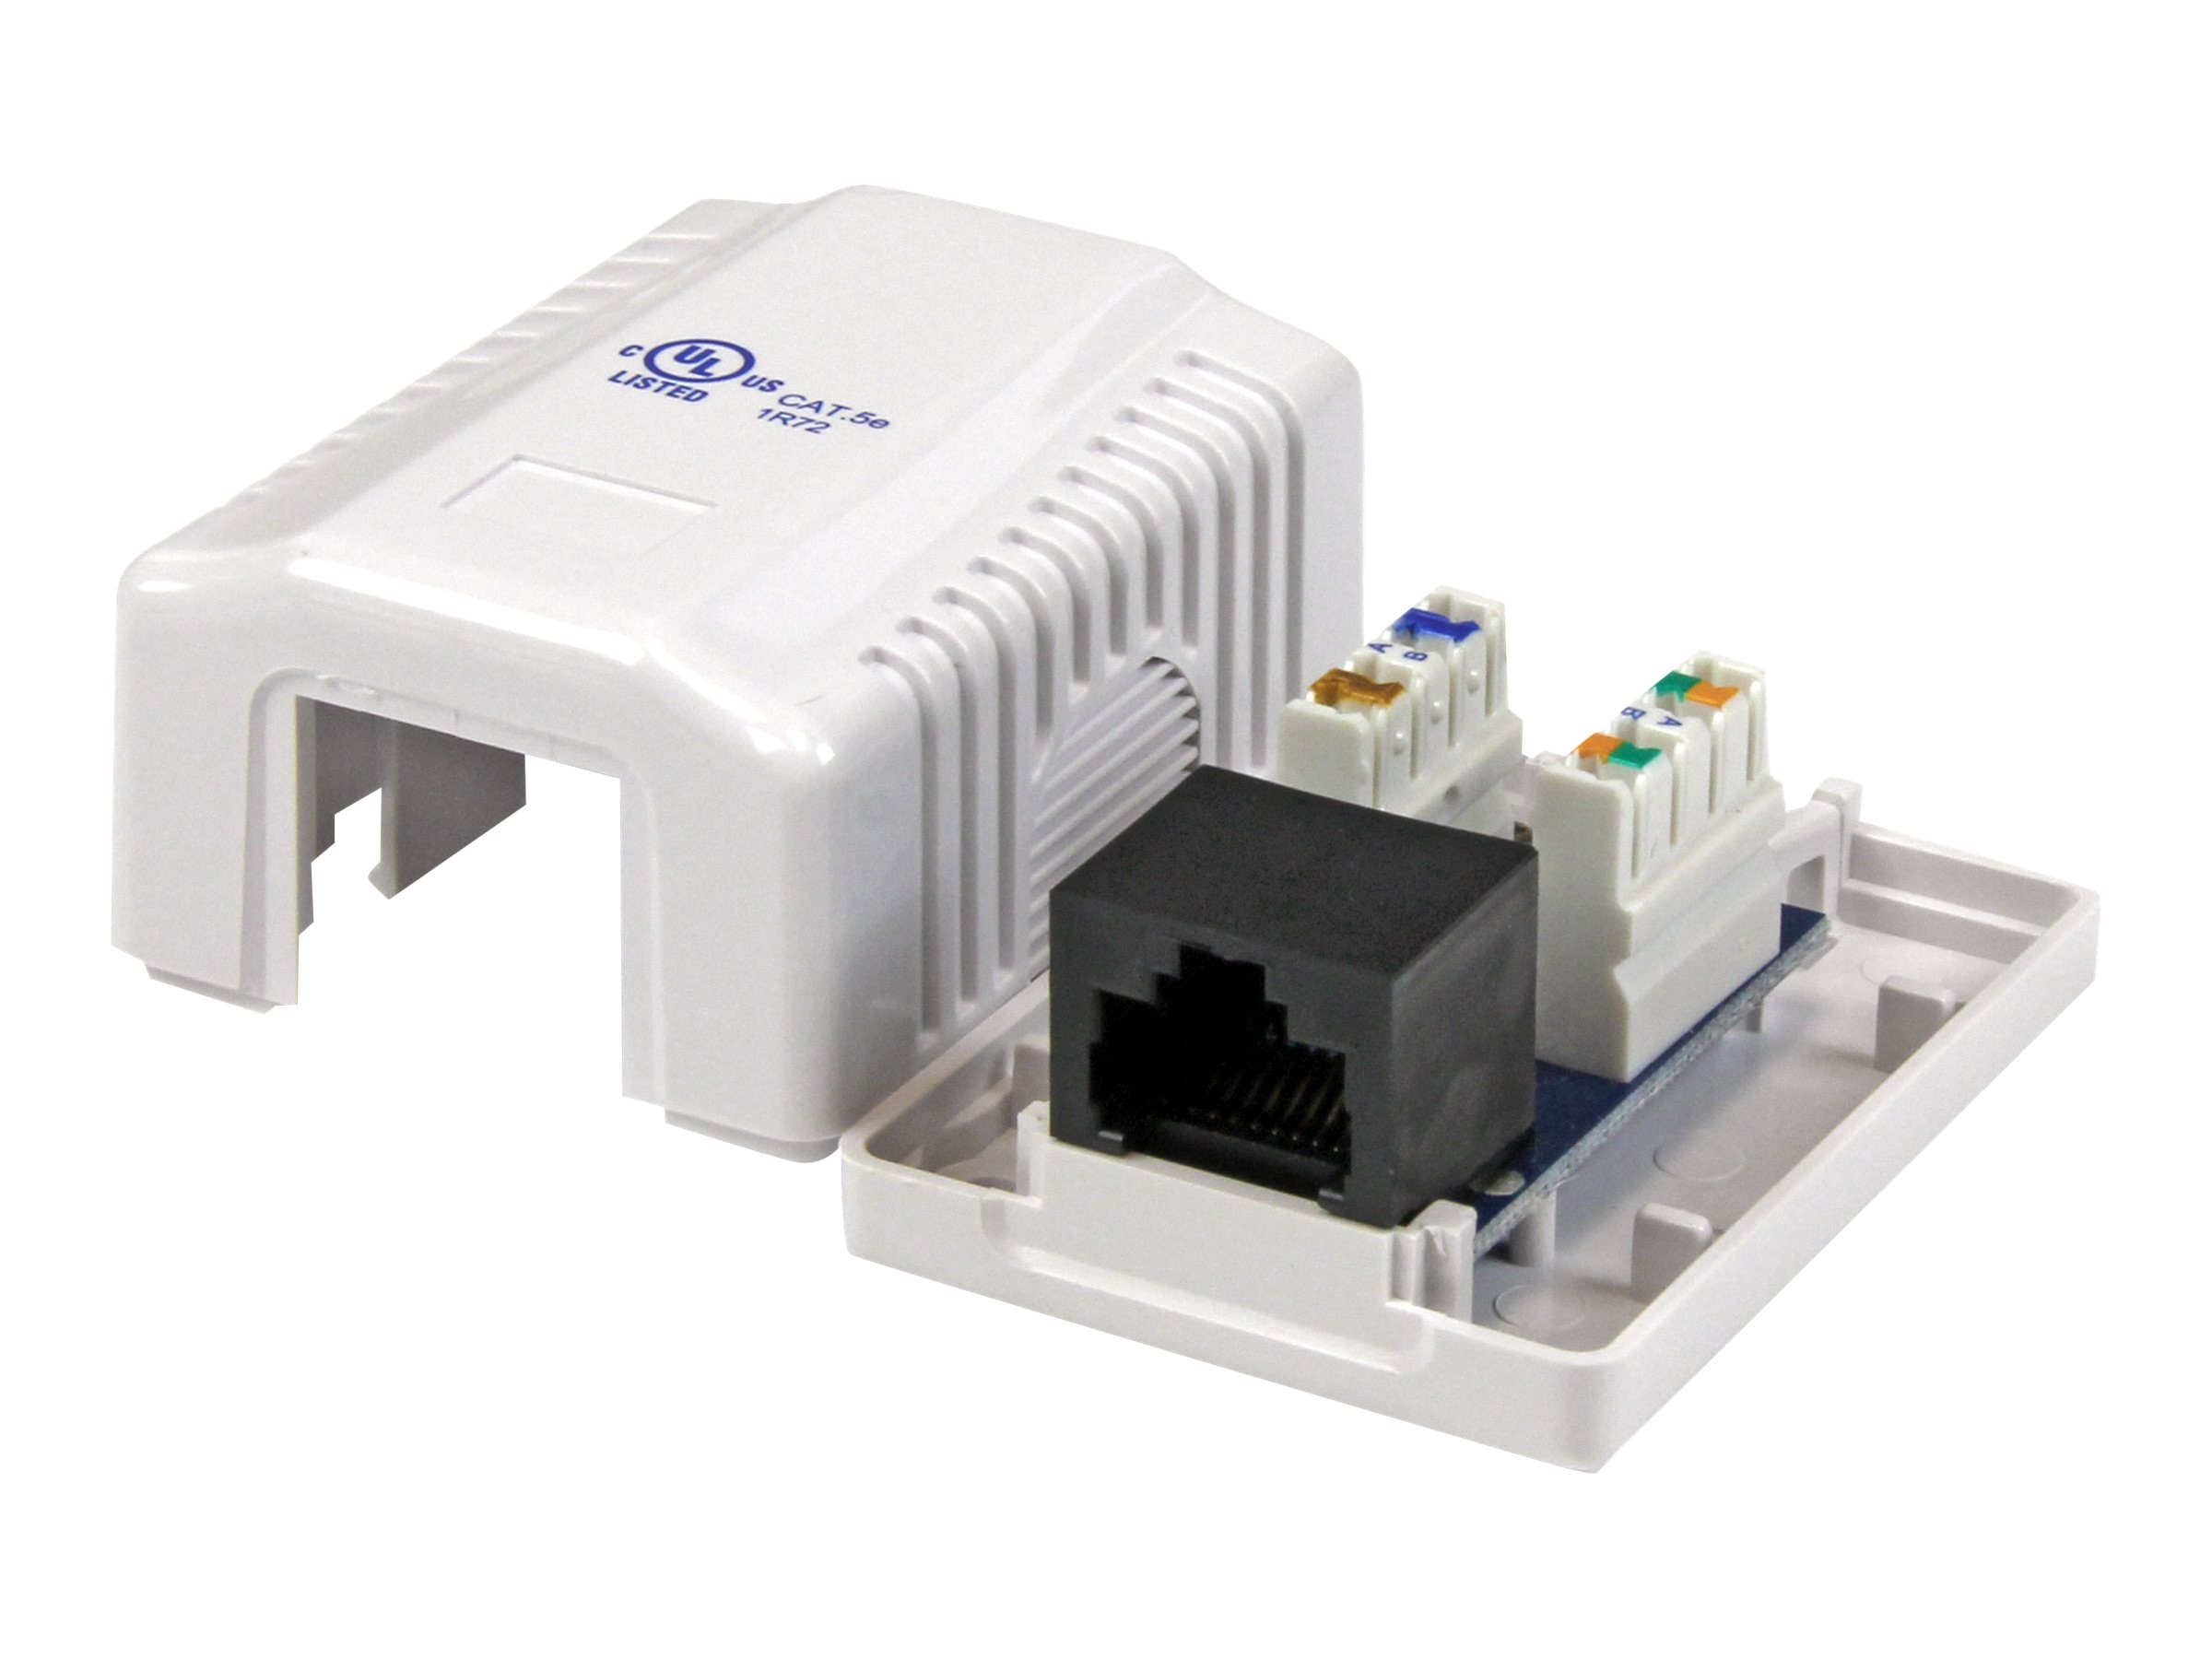 StarTech.com Single Cat5e RJ-45 Wall Box, Keystone Jack, White